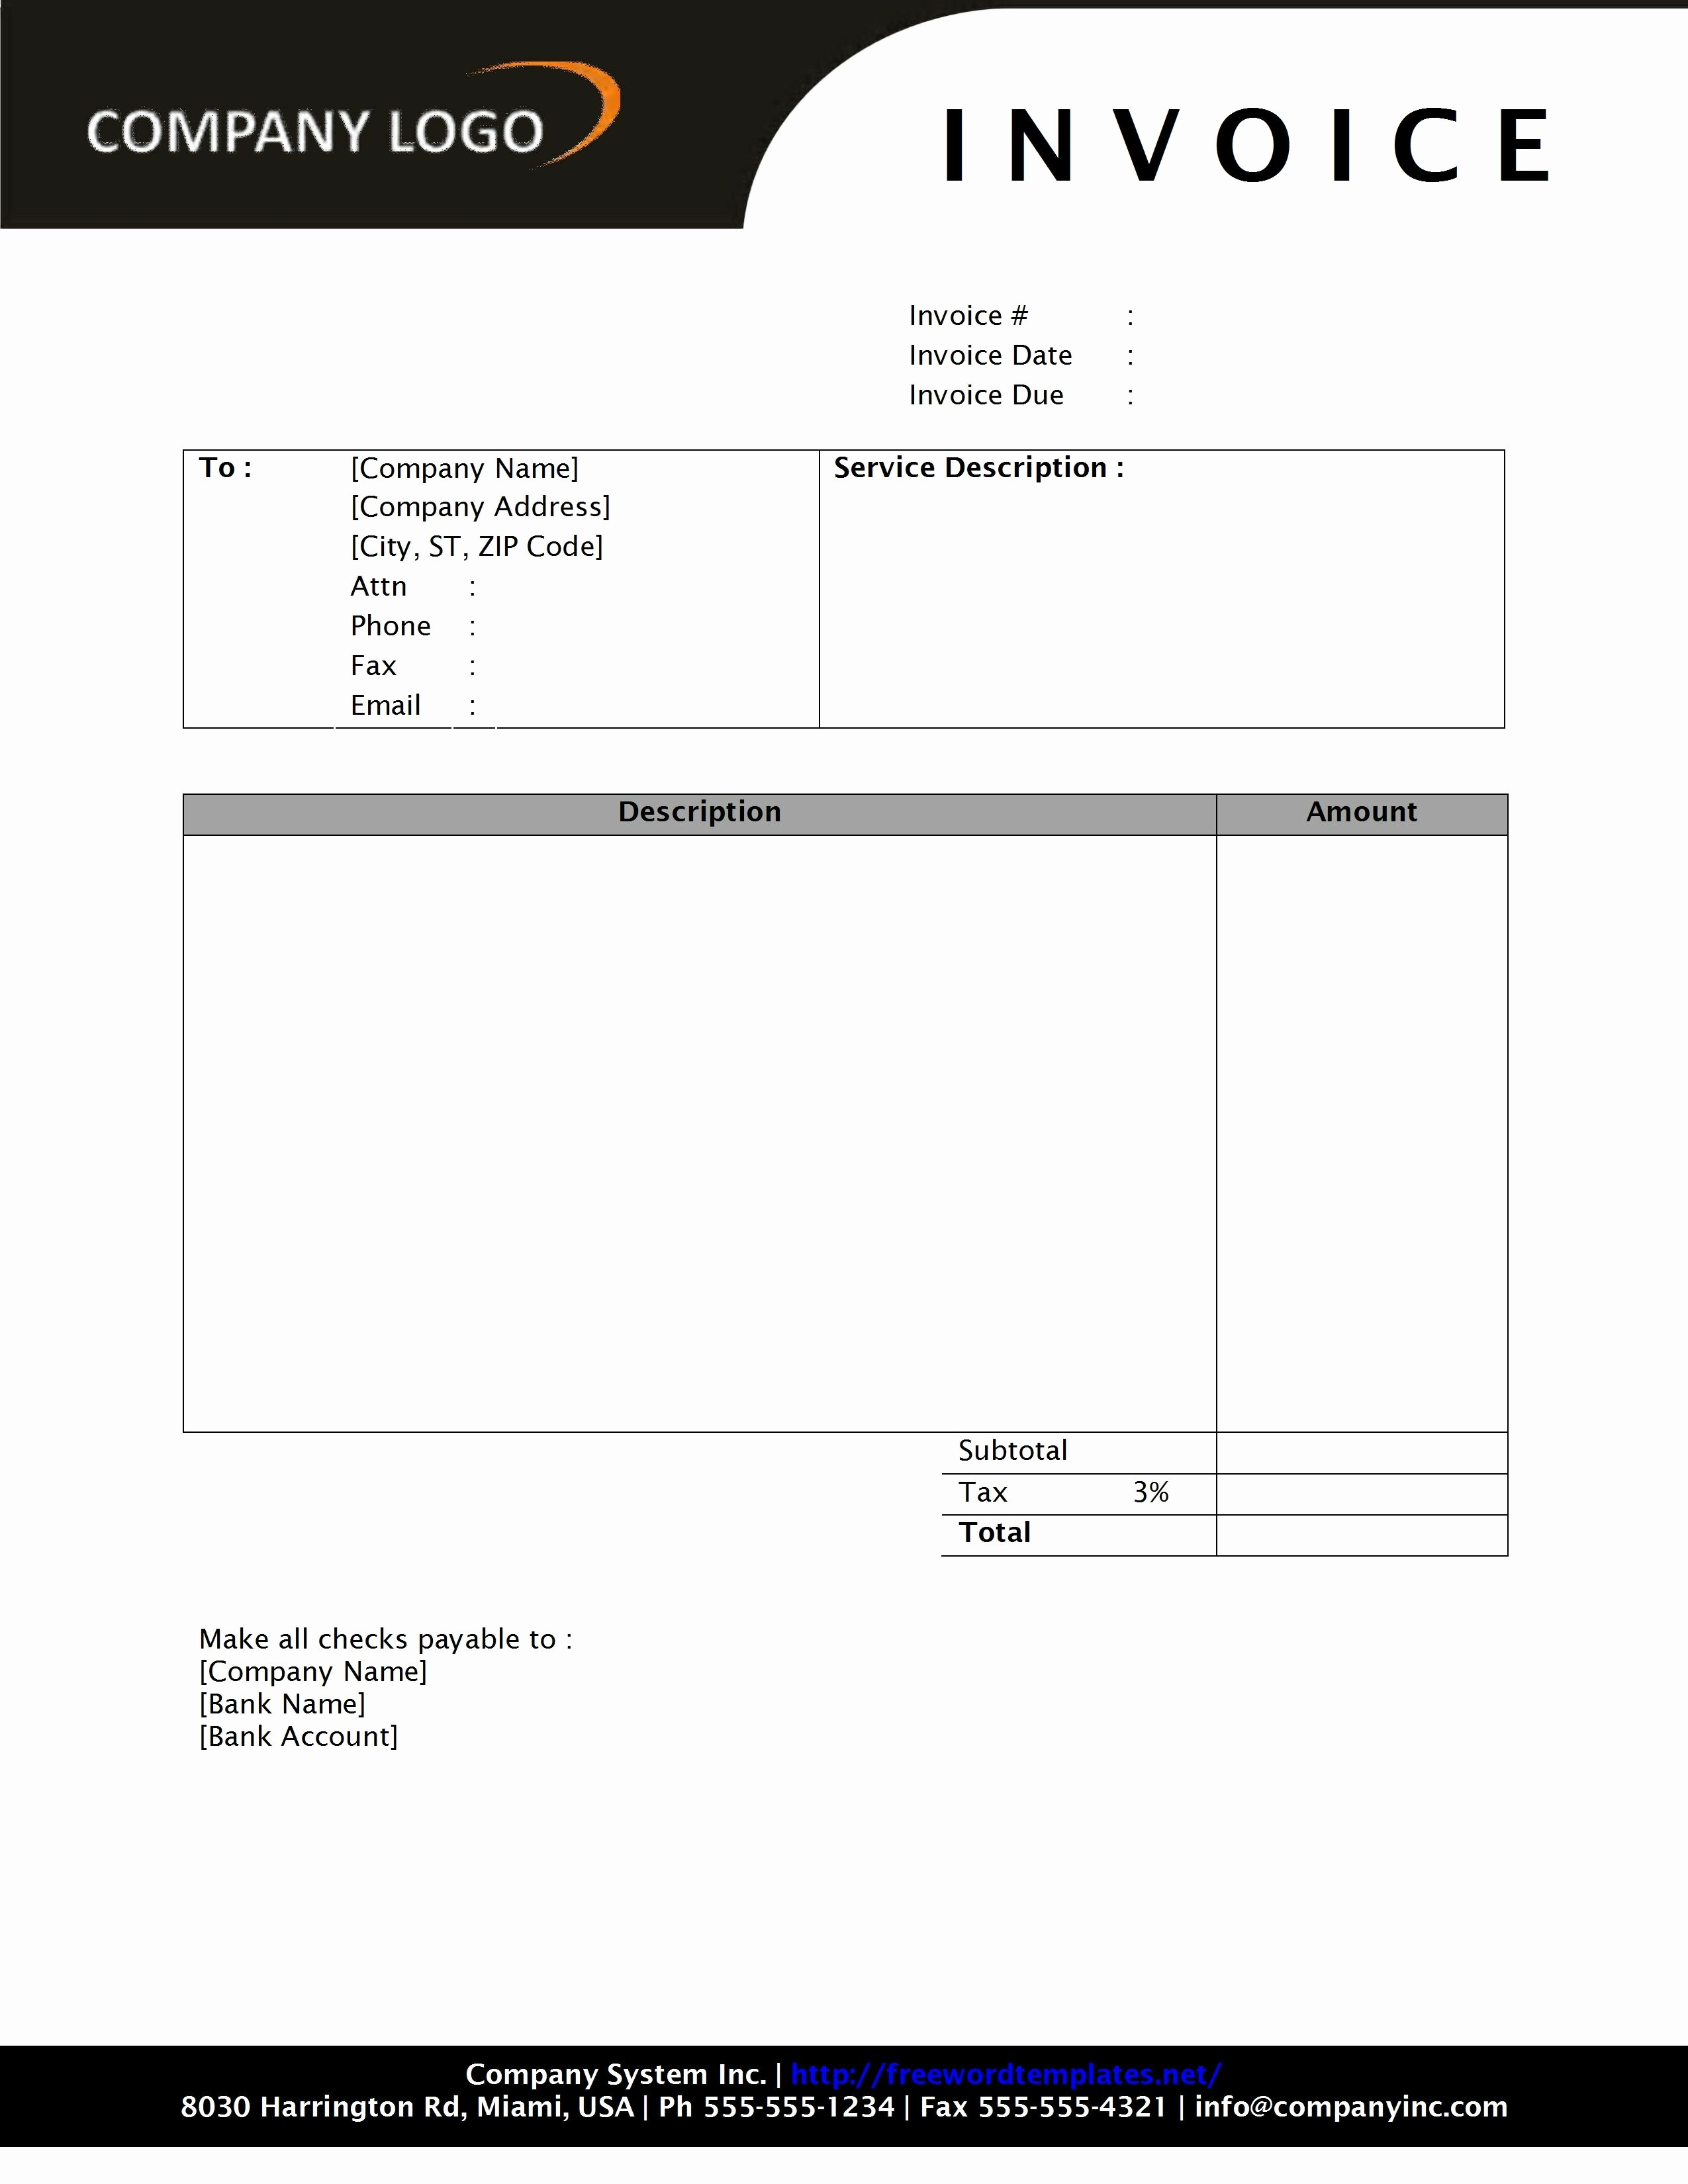 Invoice Template Word Download Free Unique Invoice Template Word 2010